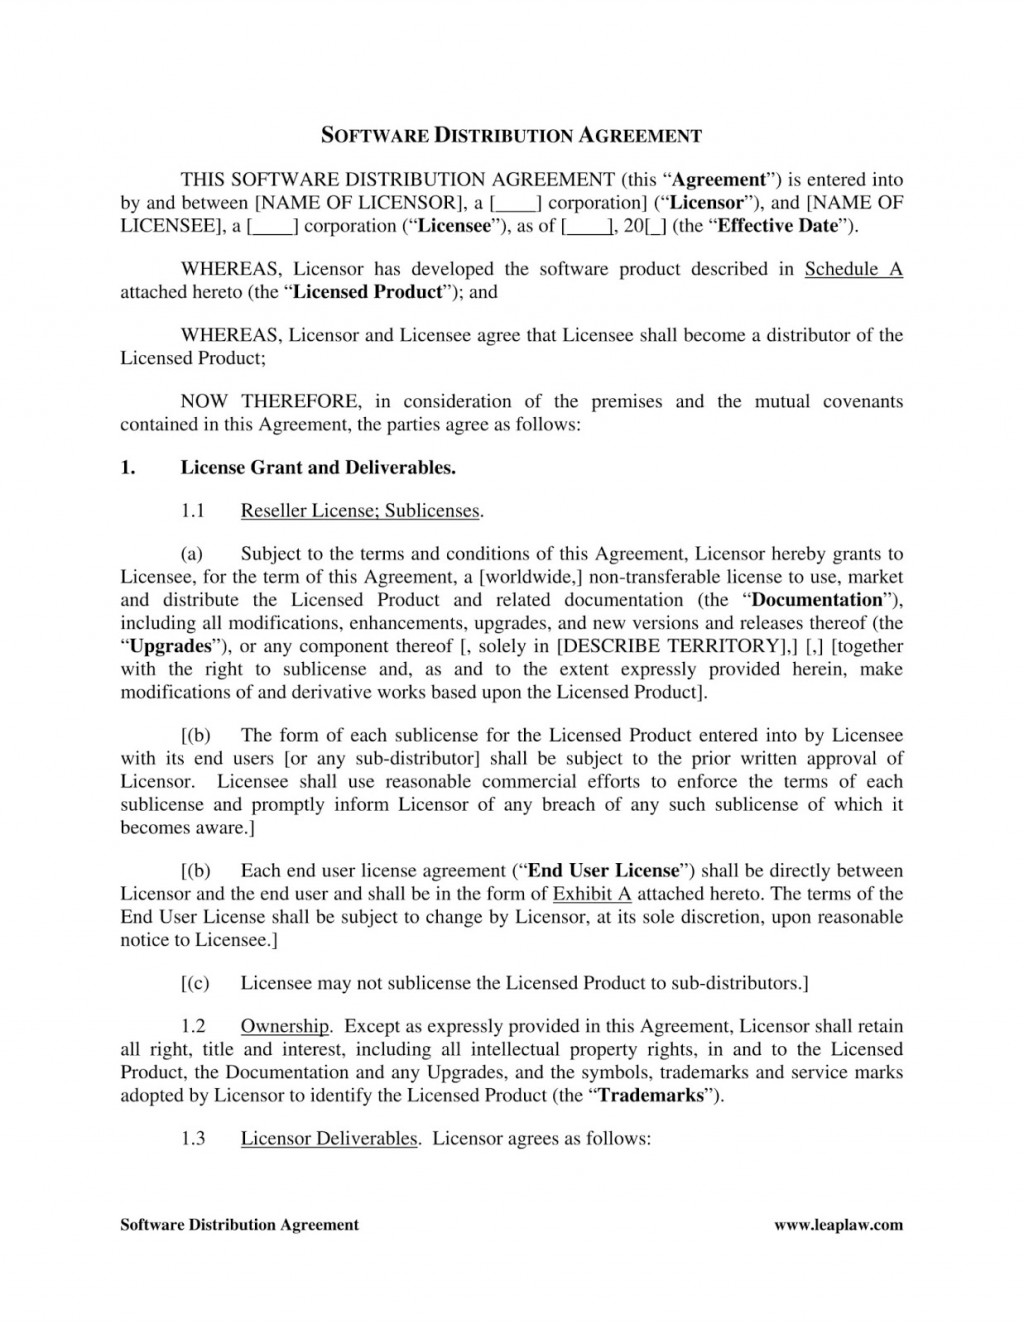 003 Astounding Exclusive Distribution Agreement Template Free Download Highest Clarity Large